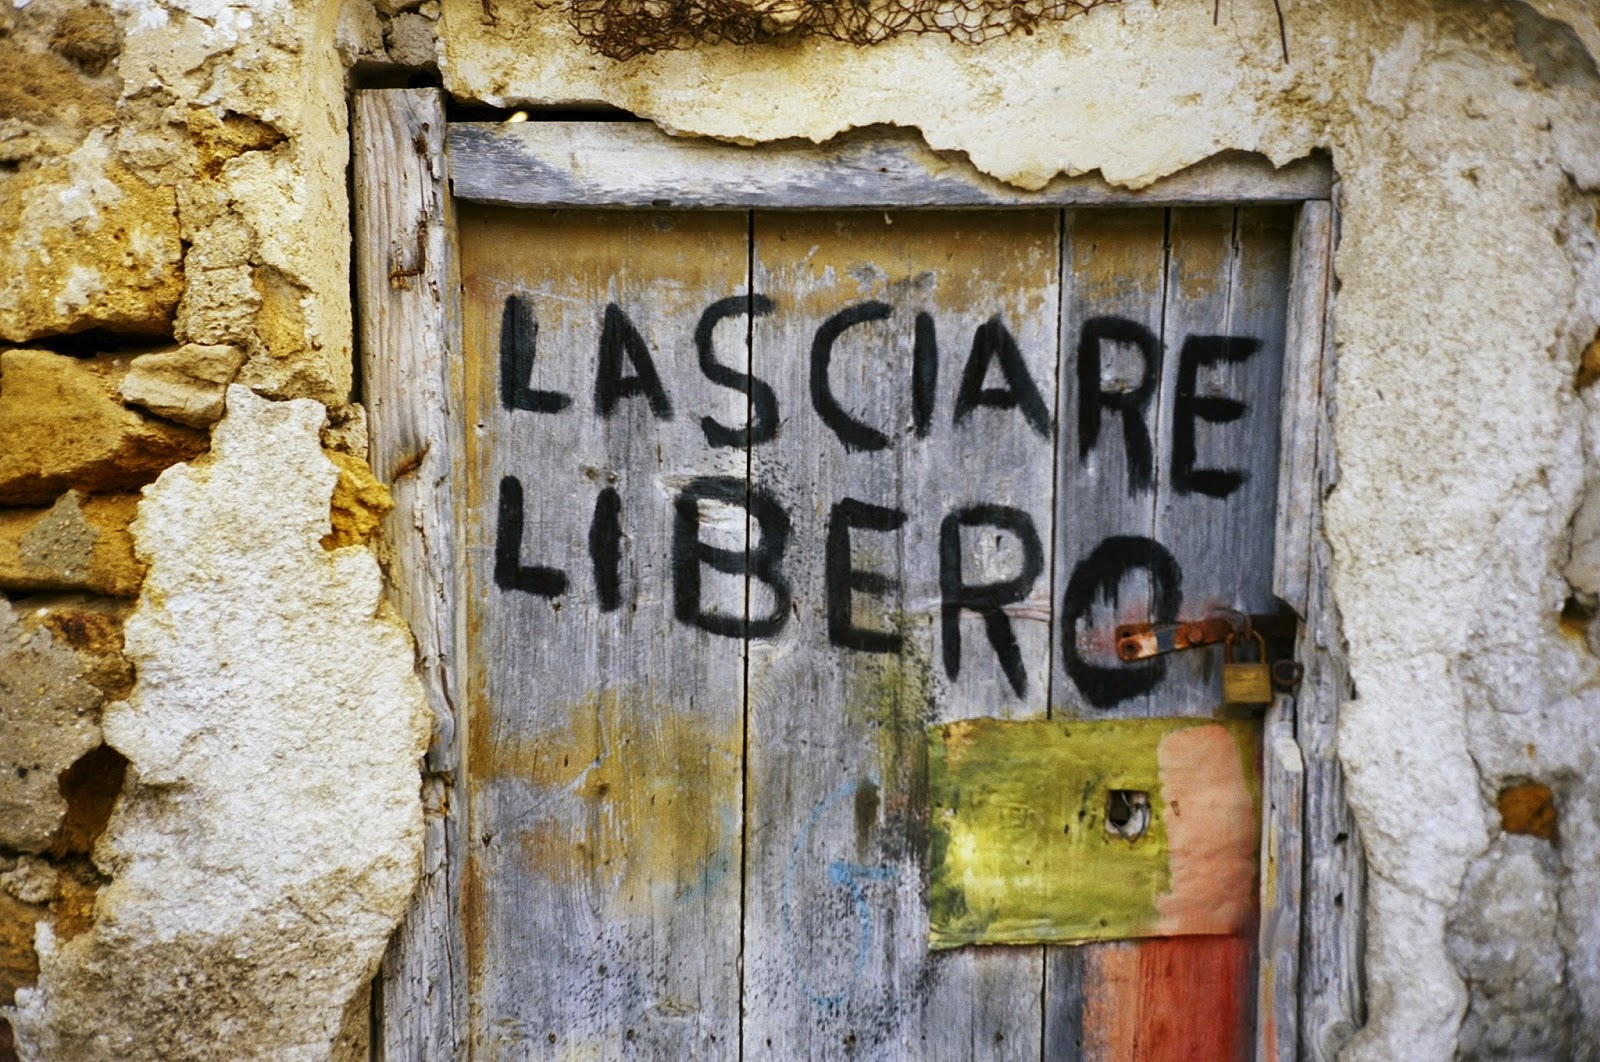 KEEP CLEAR, FREEDOM, LIBERTY, GRAFFITI, CALAMONACI, AGRIGENTO, SICILY, ITALY, LAMPEDUSA, VISUAL ATHLETICS CLUB, 100 DAYS 4 MILLION CONVERSATIONS, 2015 GENERAL ELECTION